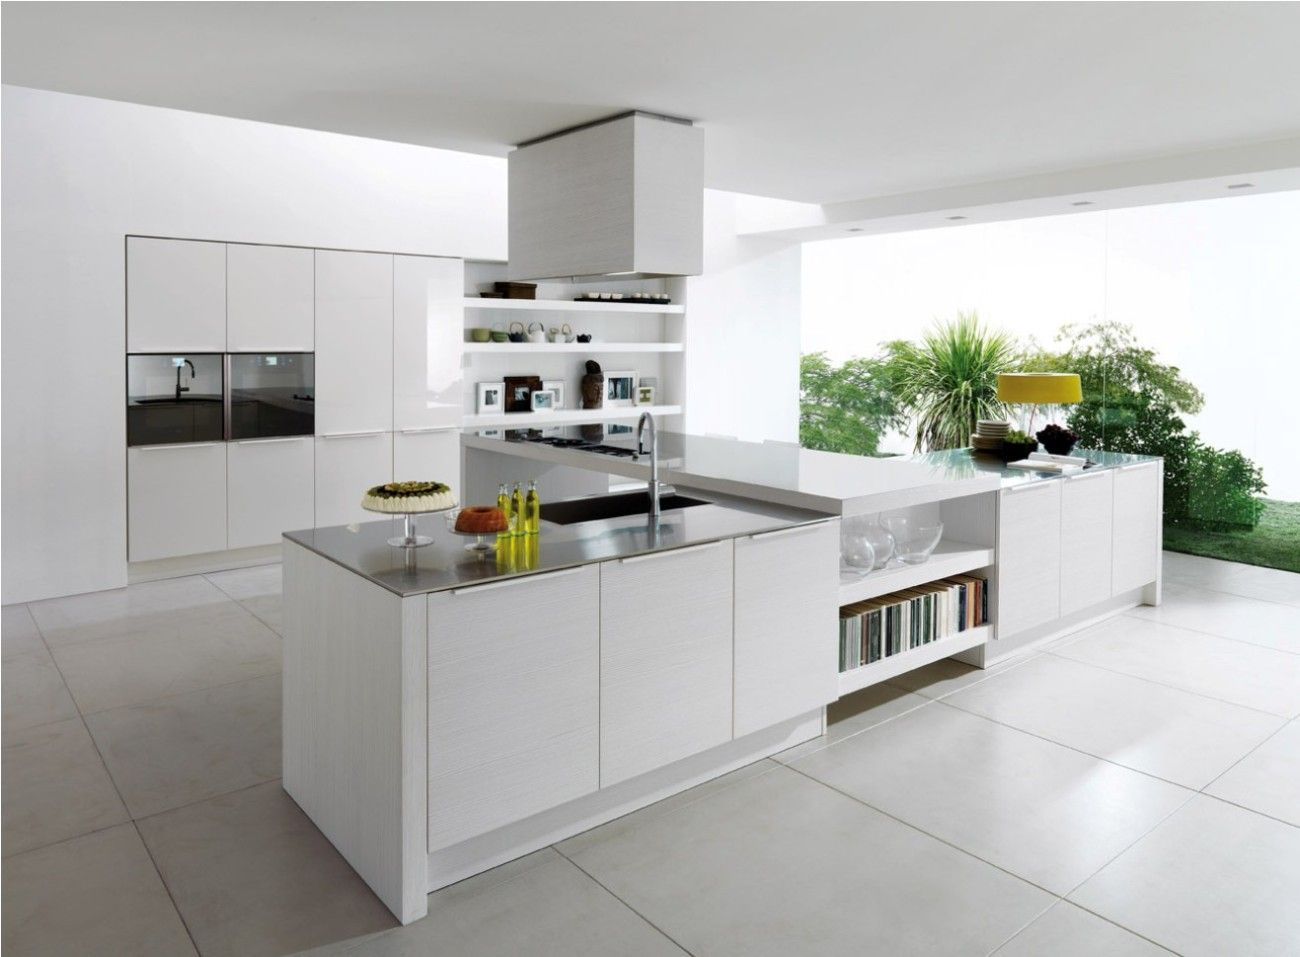 Kitchen Ideas 2013 Contemporary Kitchen Ideas 2013  New Kitchen Style